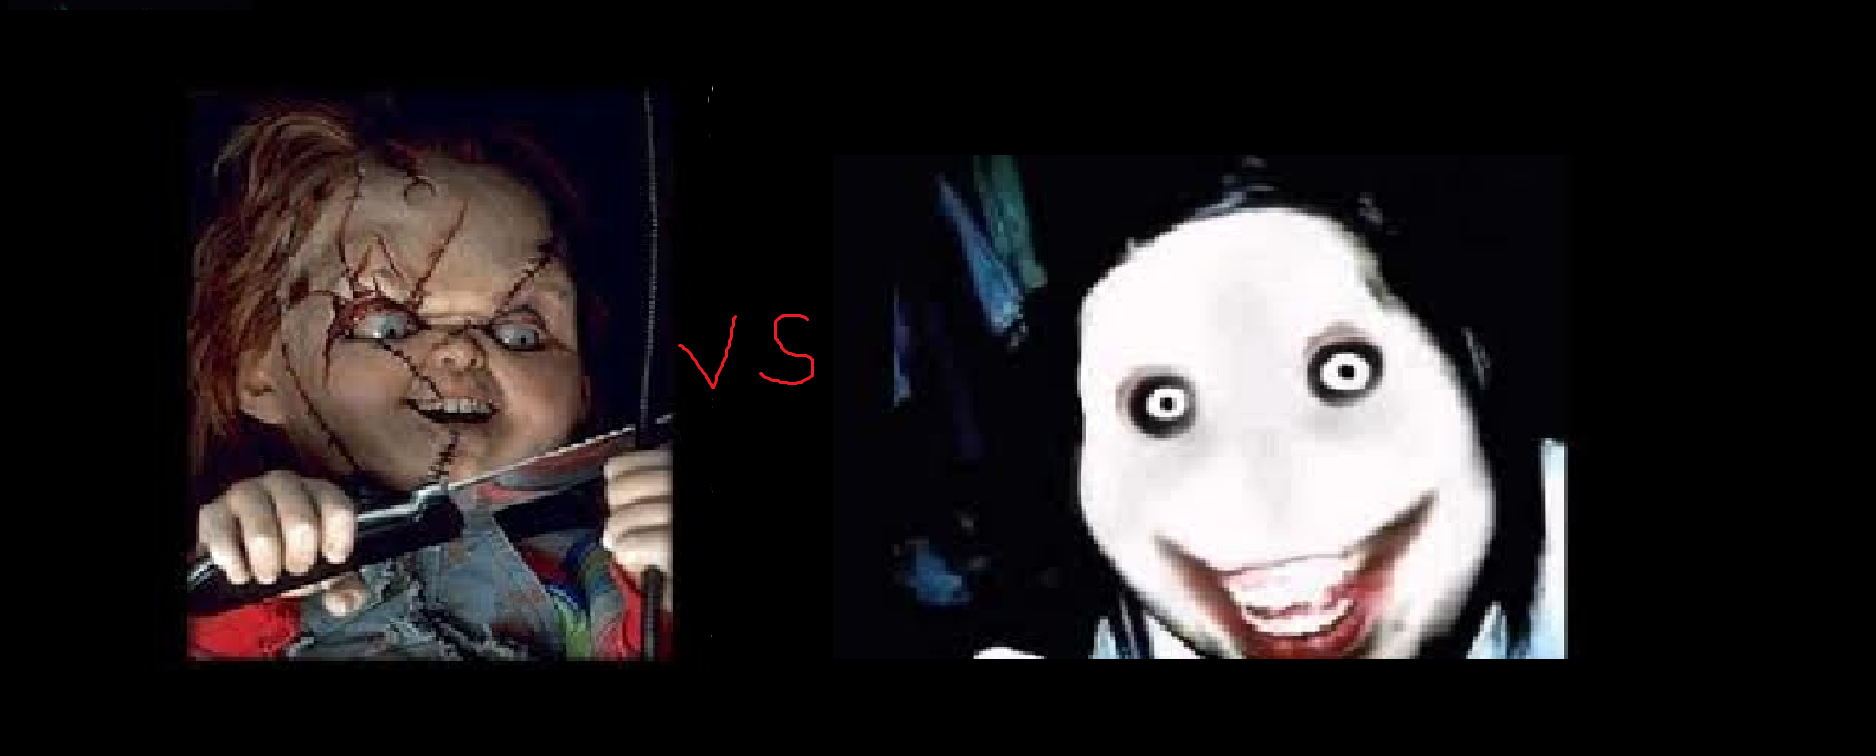 Image jeff vs chucky png the fanfiction wiki of gtf and phazon